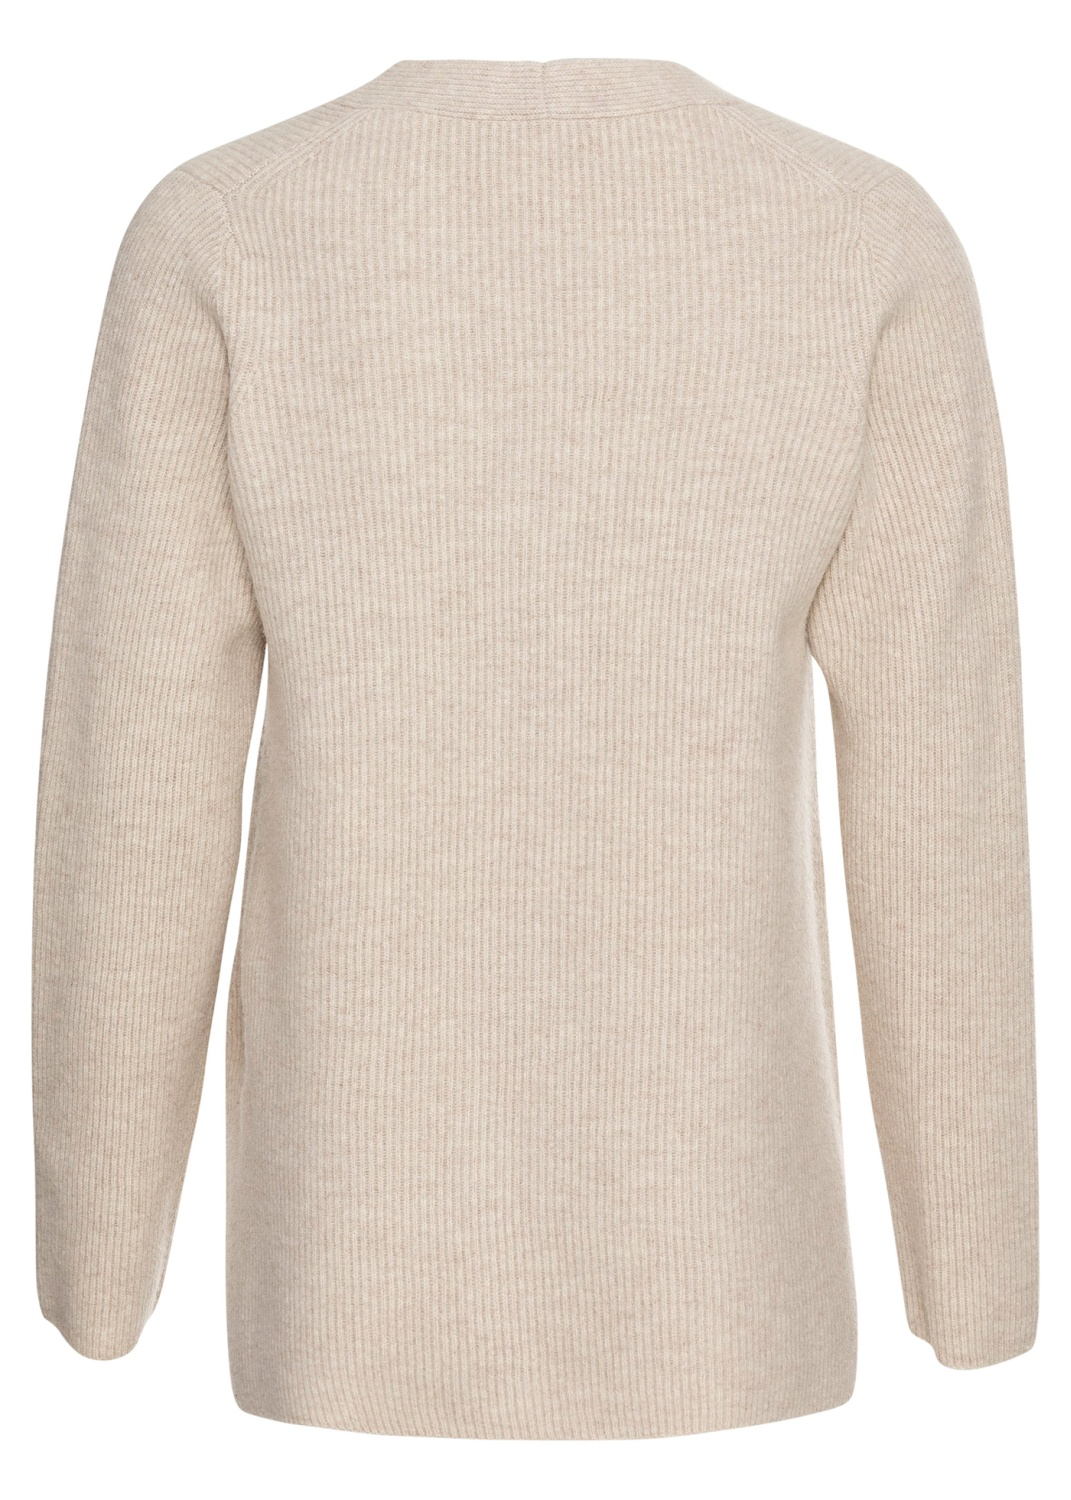 CLEAN RIB TUNIC image number 1